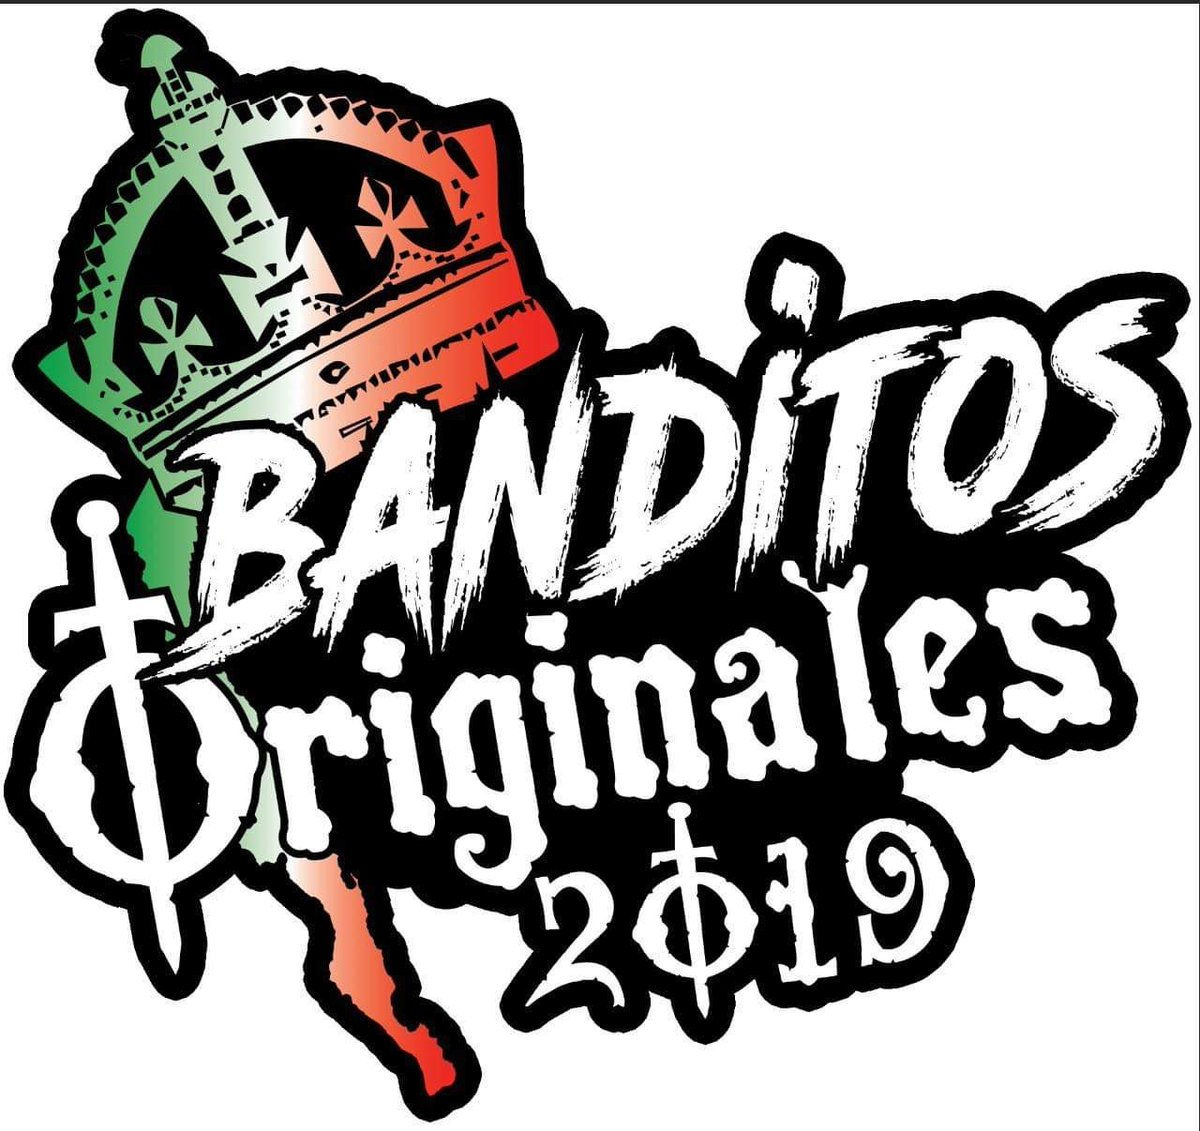 Were you a driver in the first ever El Rey de Las Bajas? Check your email! Were celebrating yall as the Banditos Originales with exclusive shirts printed only for you and your co-dog! #Ultra4 #ElReydeLasBajas #BanditosOriginales #DontMissOut